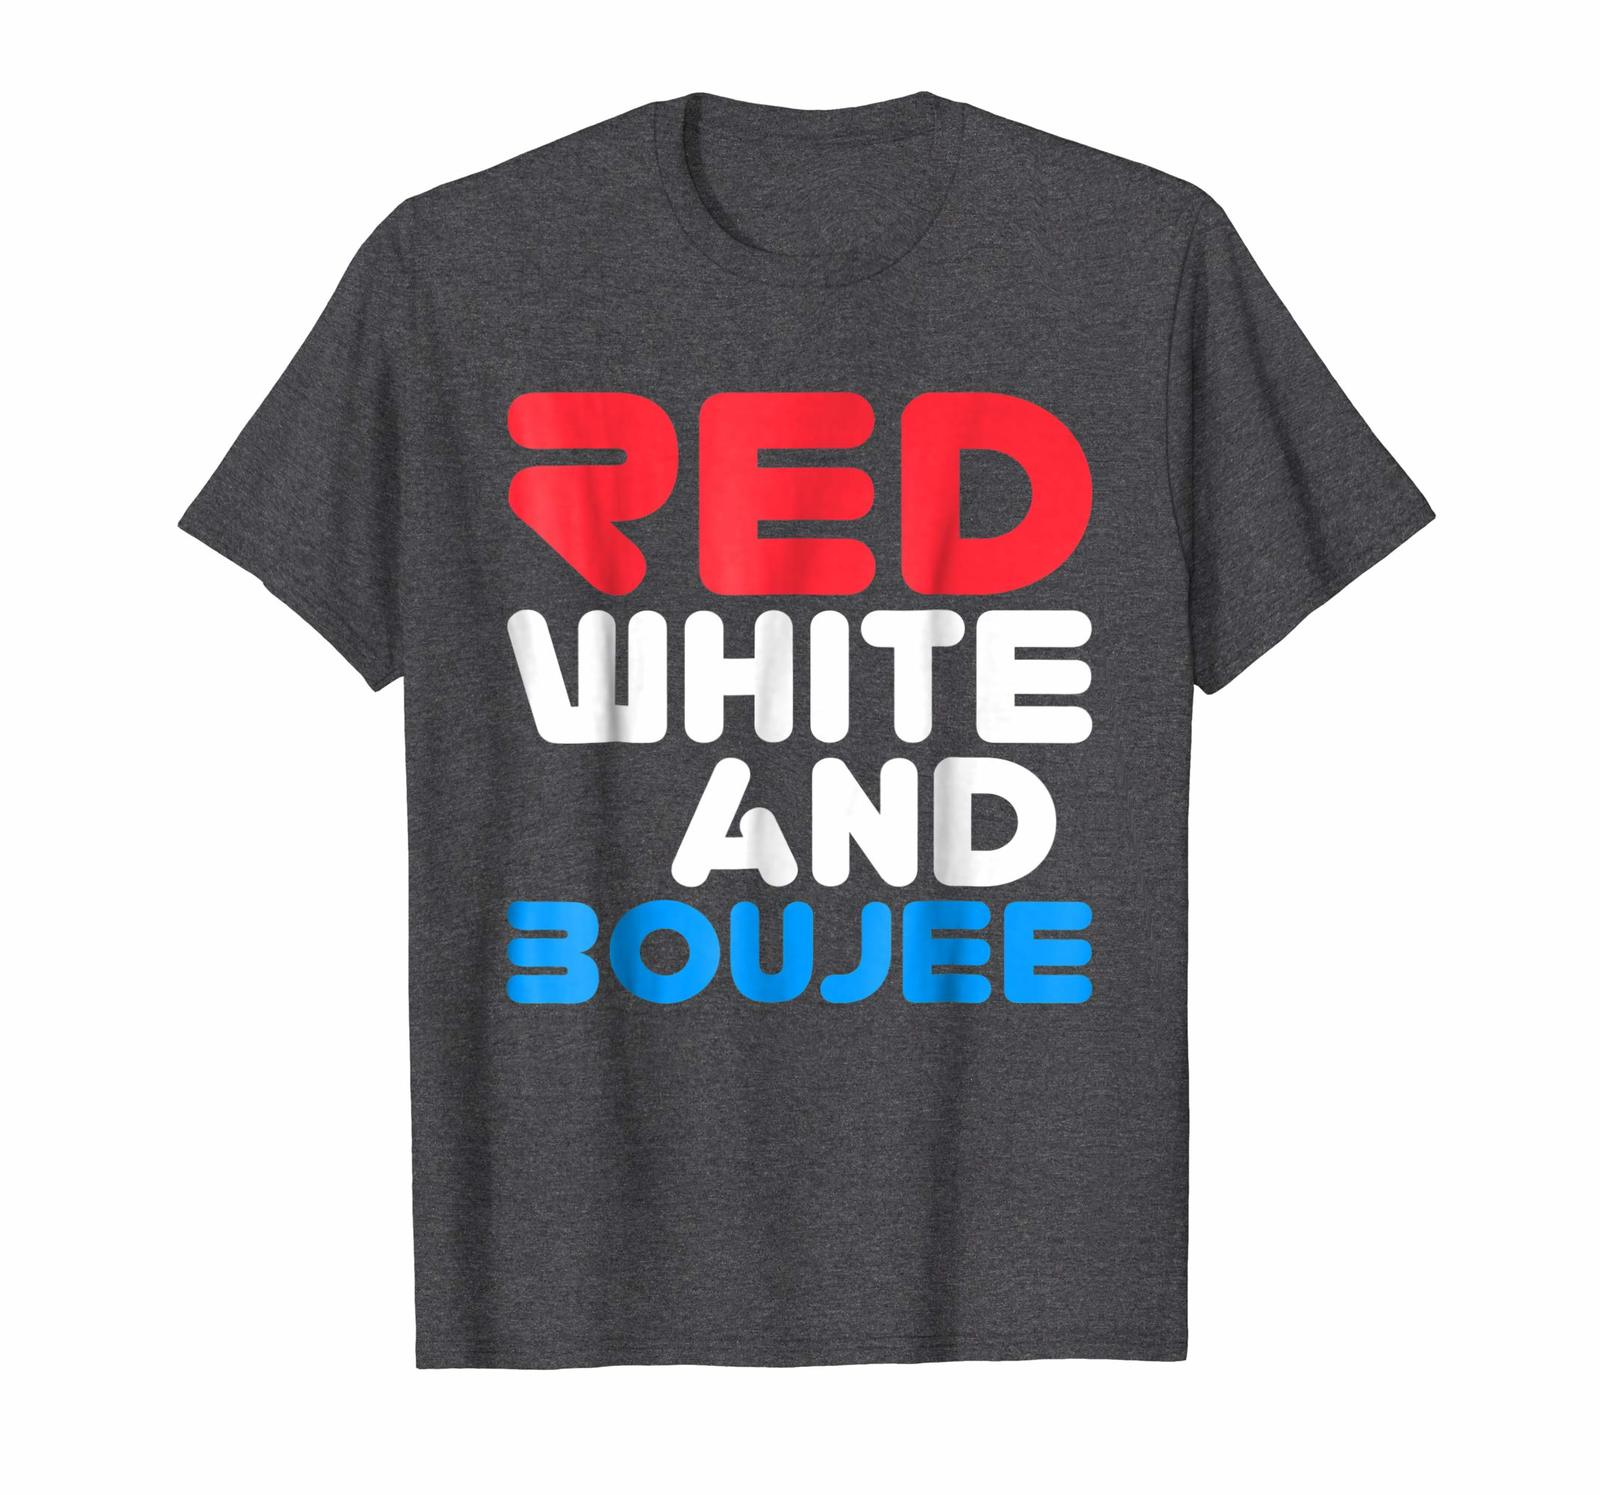 Dad Shirts -  Red White and Boujee T-Shirt Funny Fourth of July Gift Men image 2